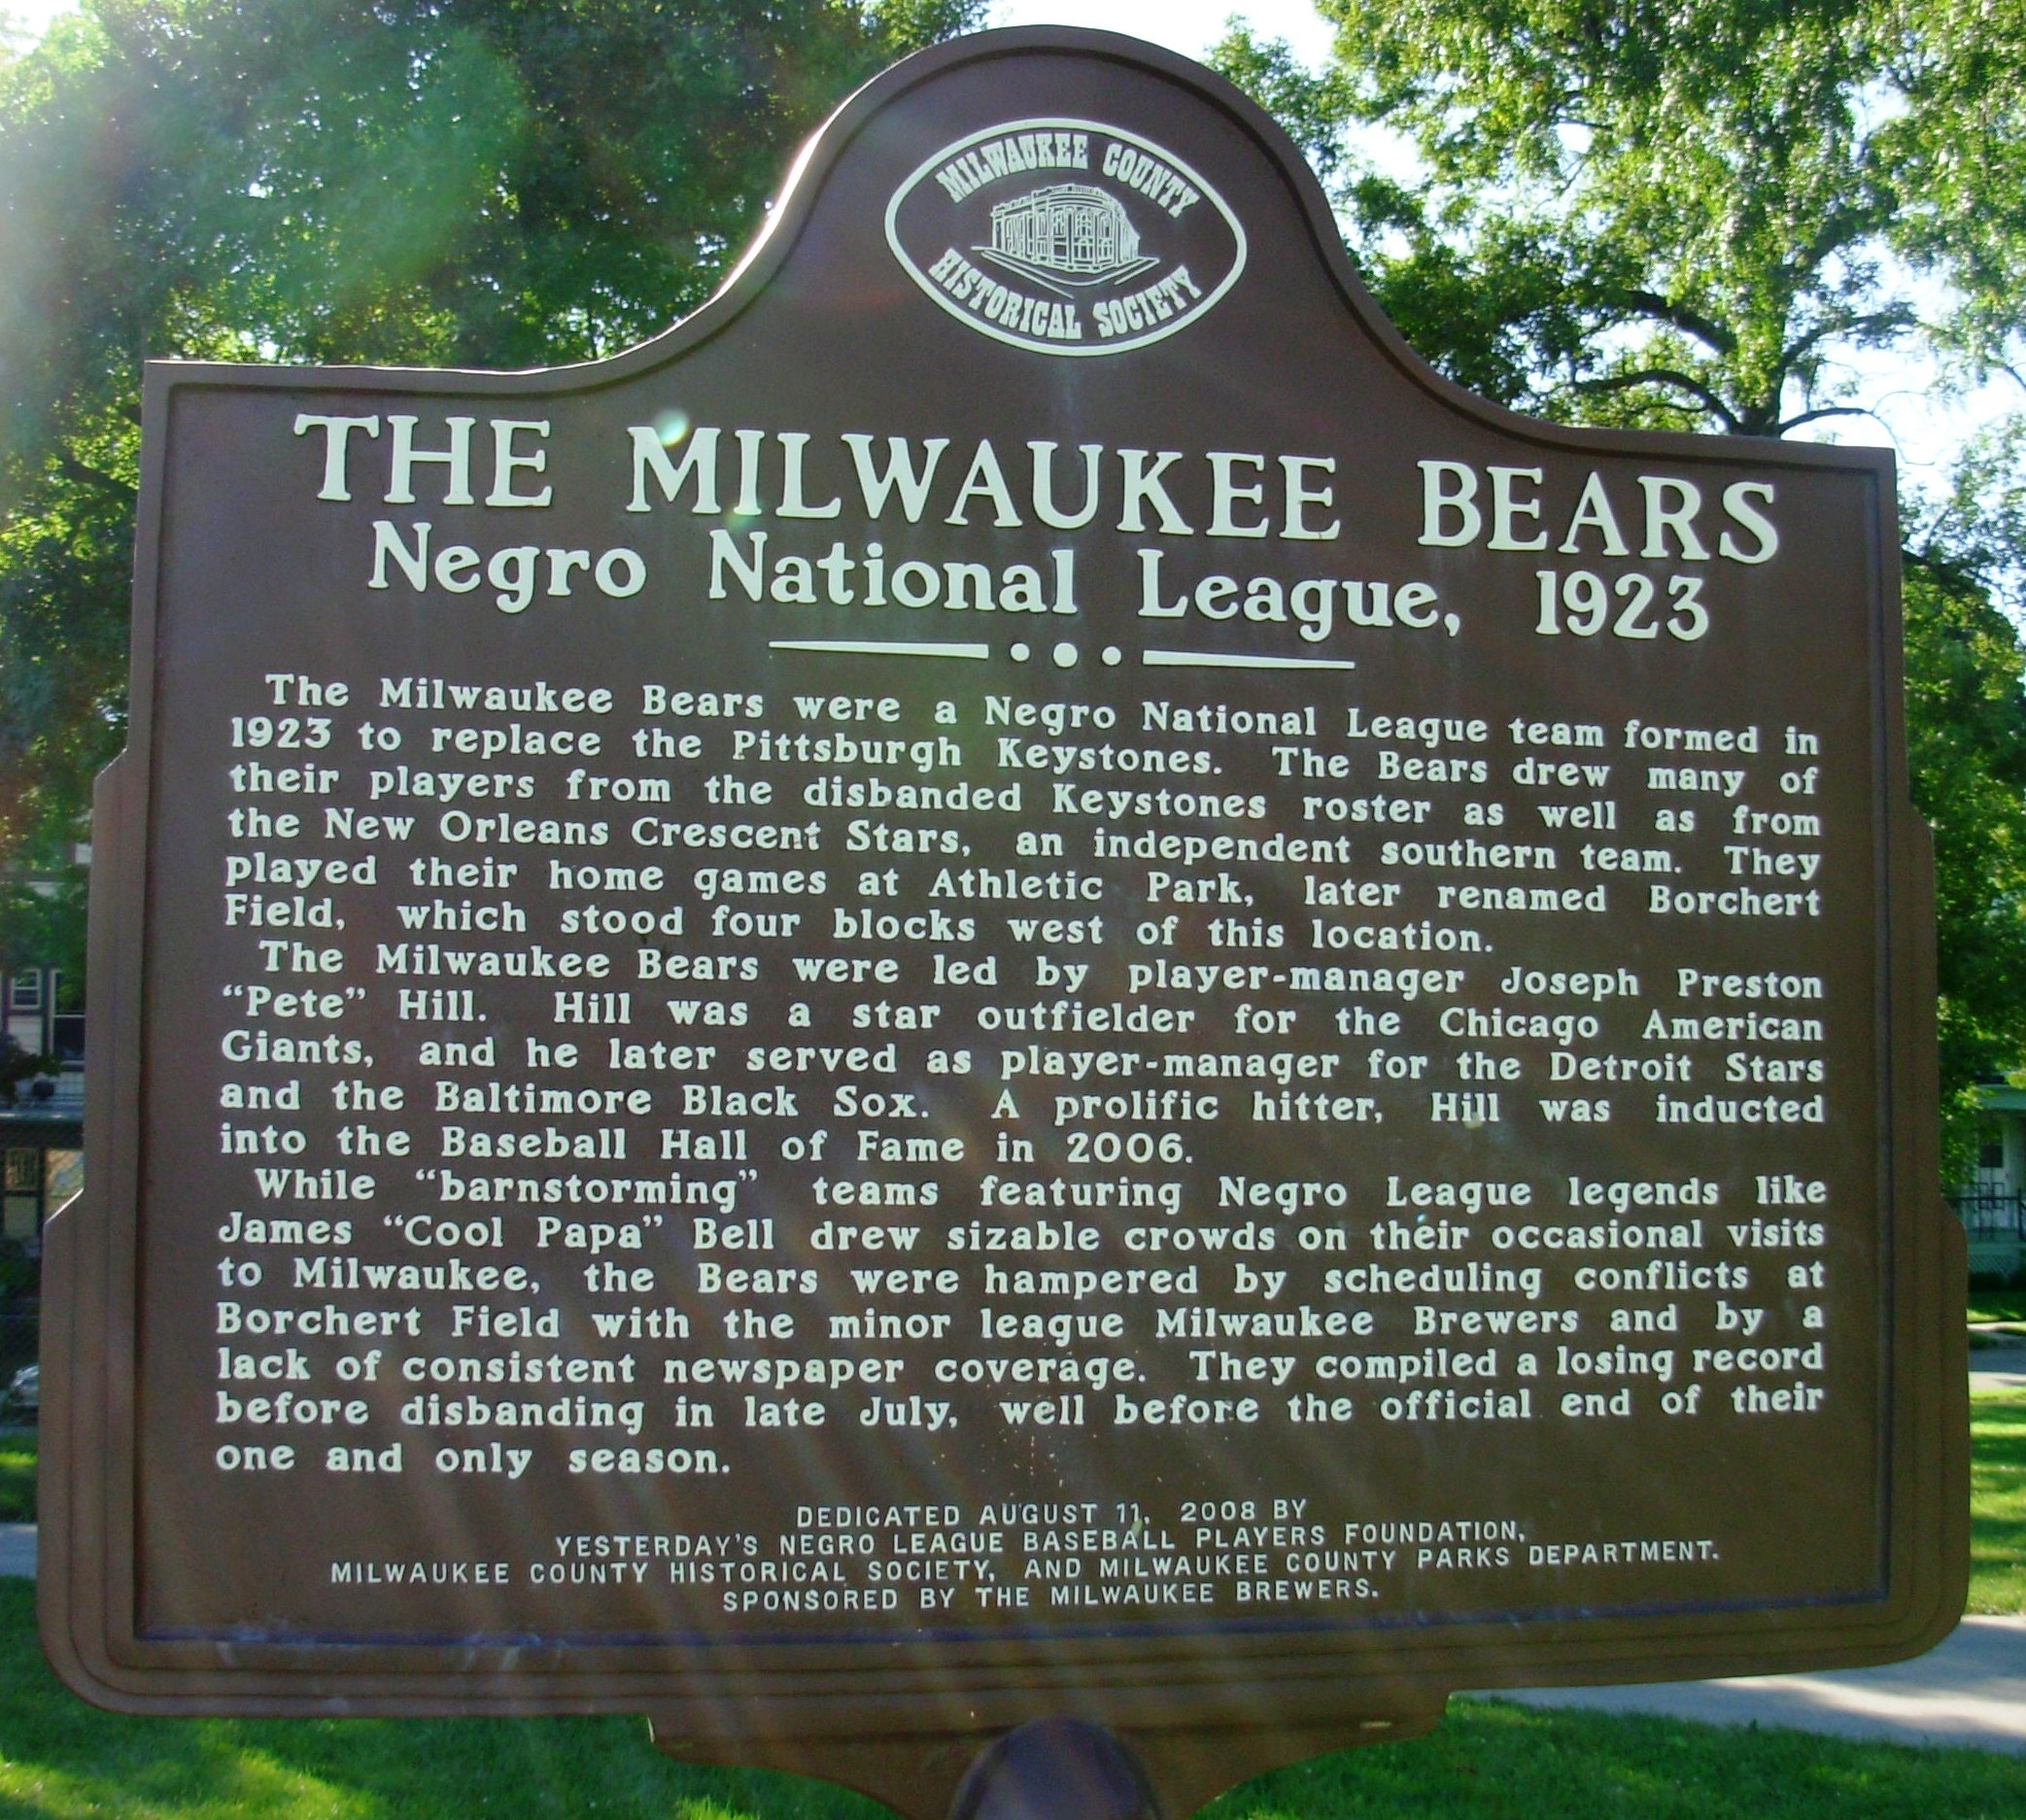 The Milwaukee Bears Negro National League 1923 Marker